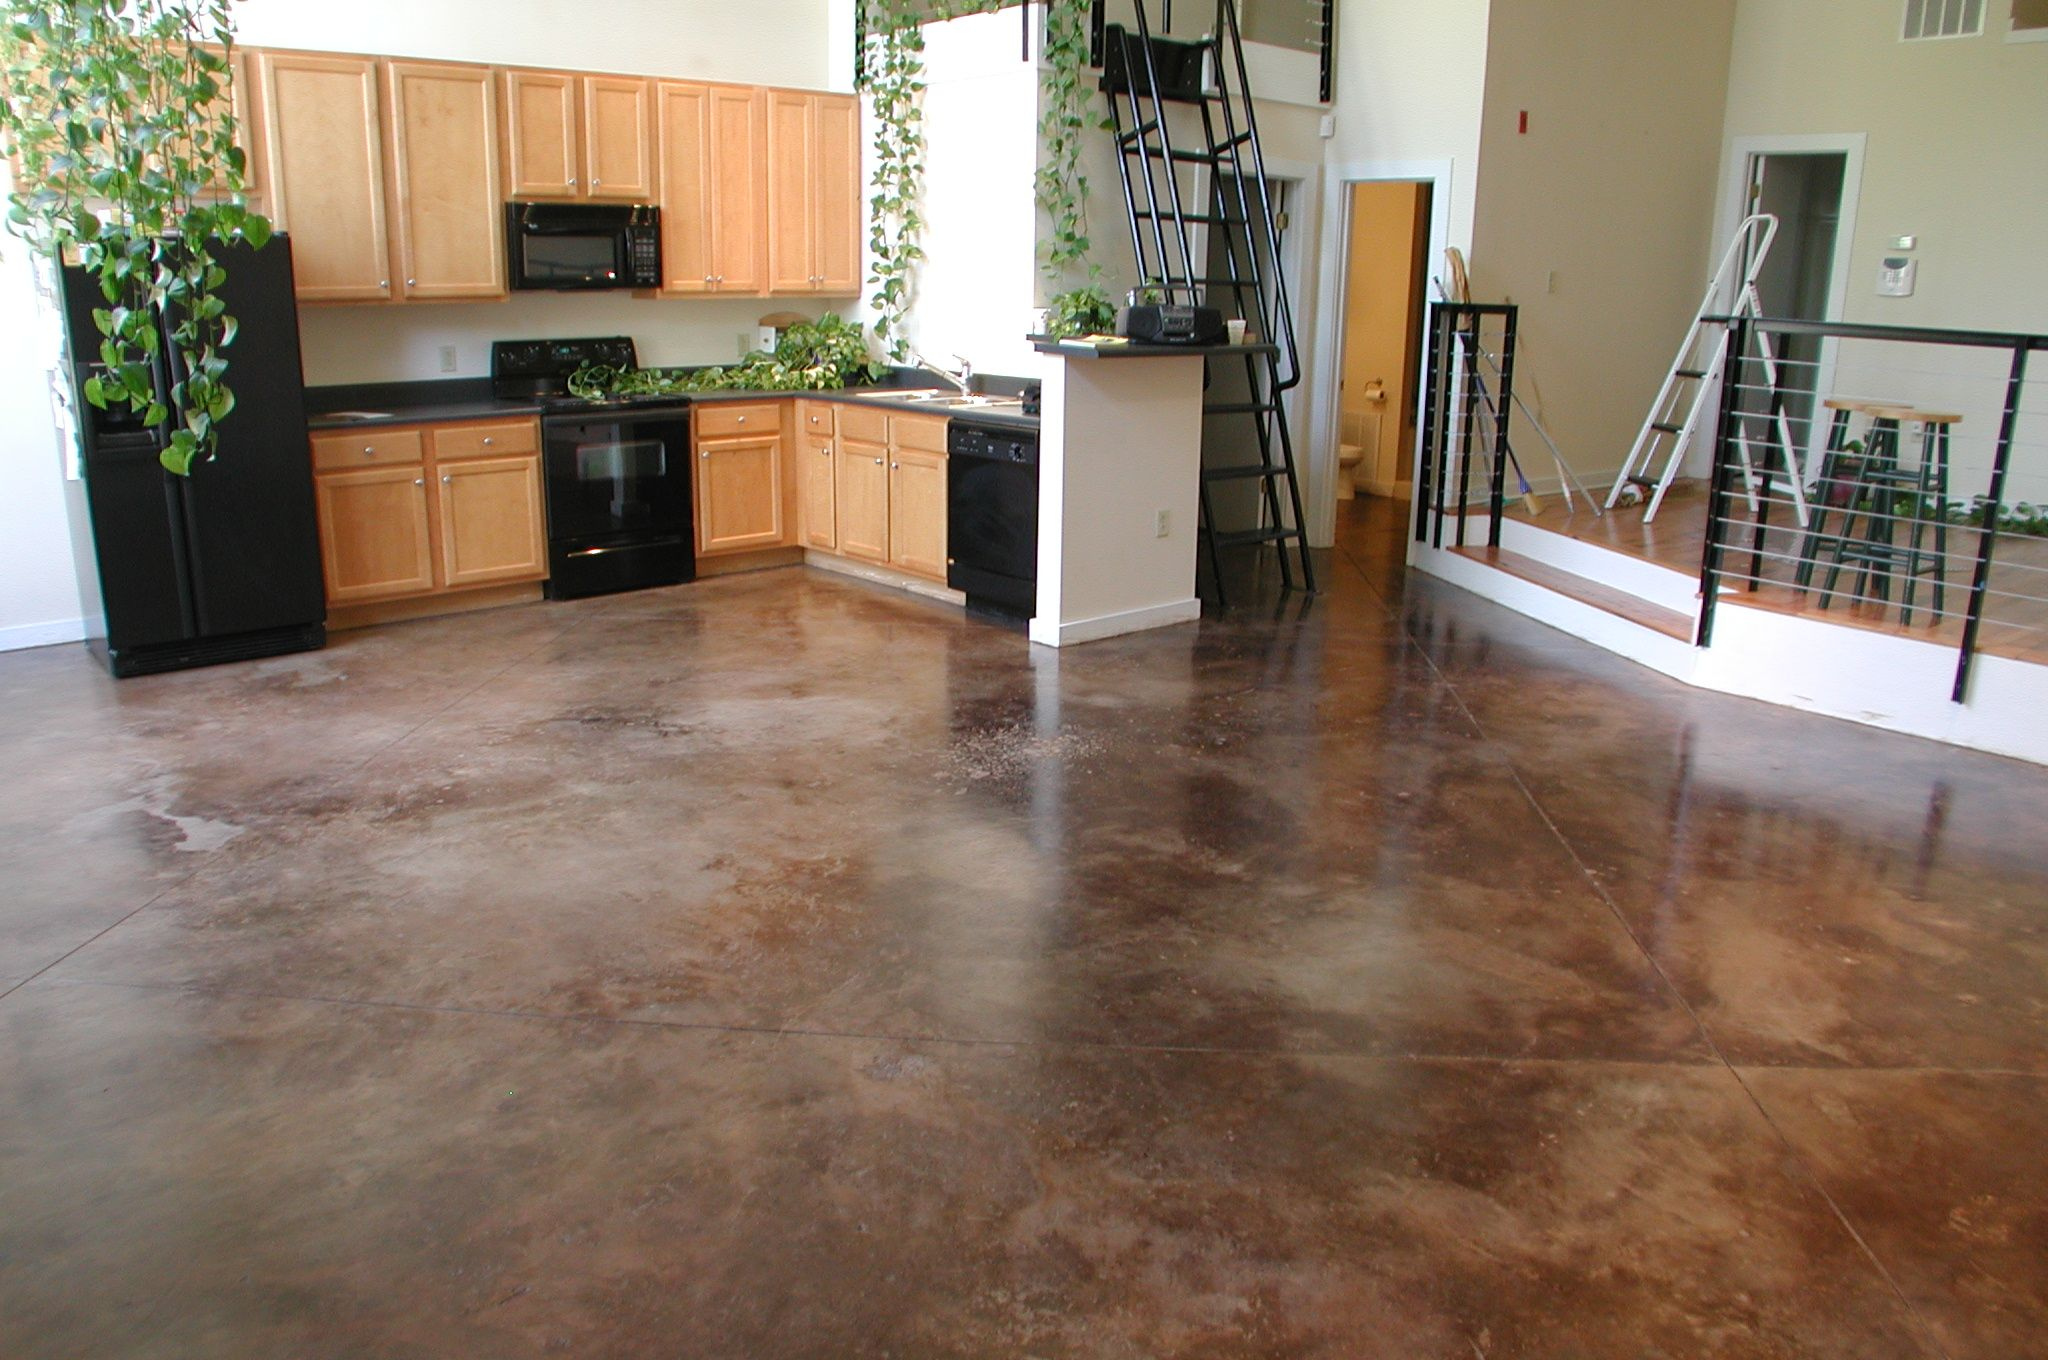 How to Stain an Interior Concrete Floor | Concrete floor, Concrete ...